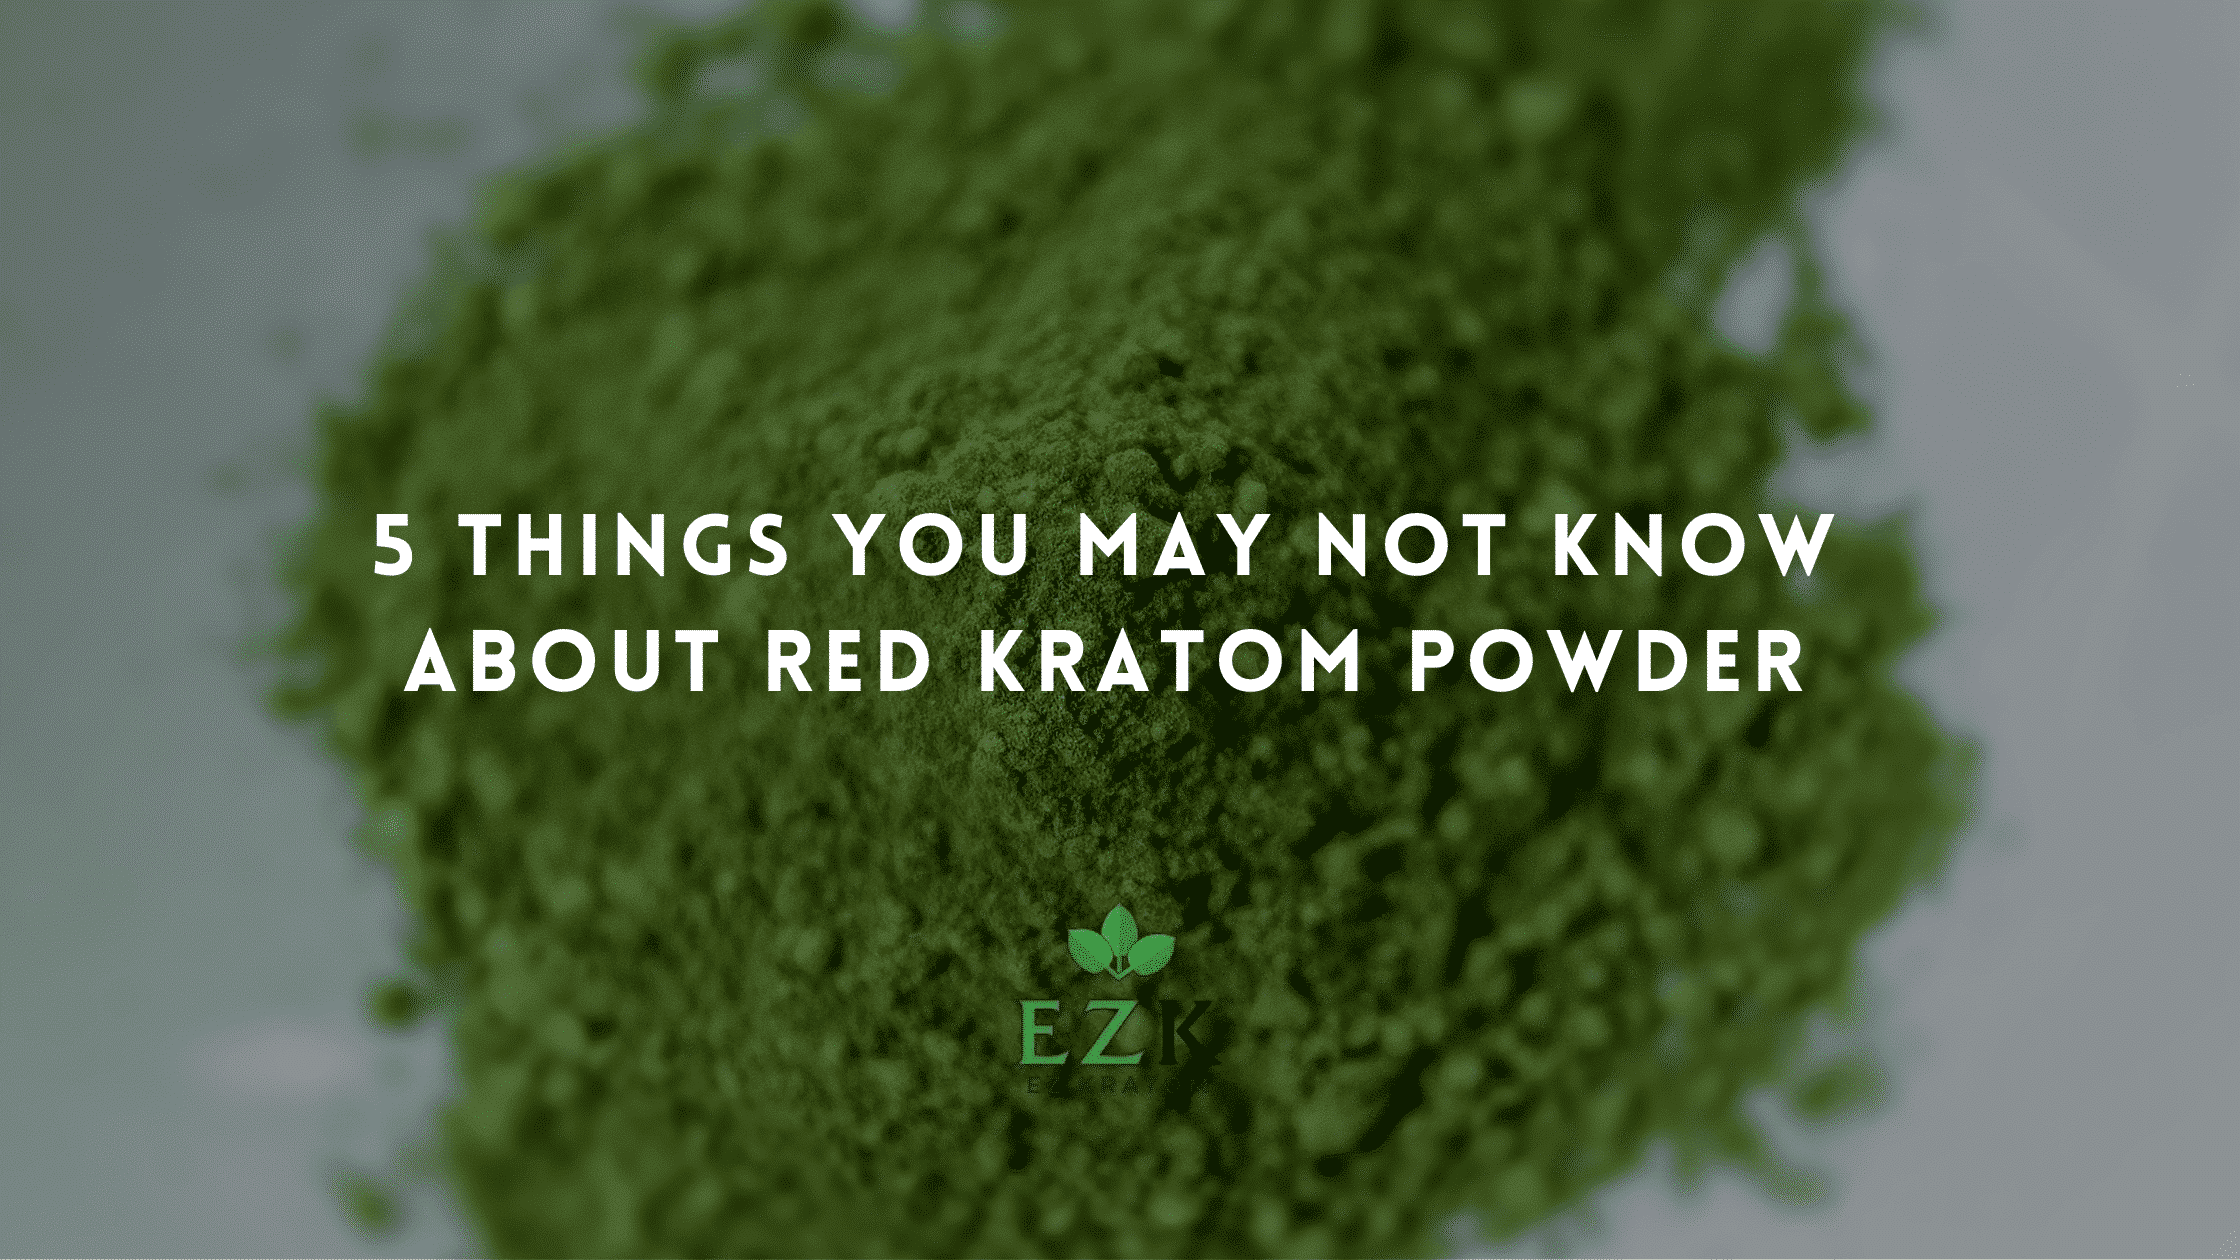 5 Things You May Not Know About Red Kratom Powder